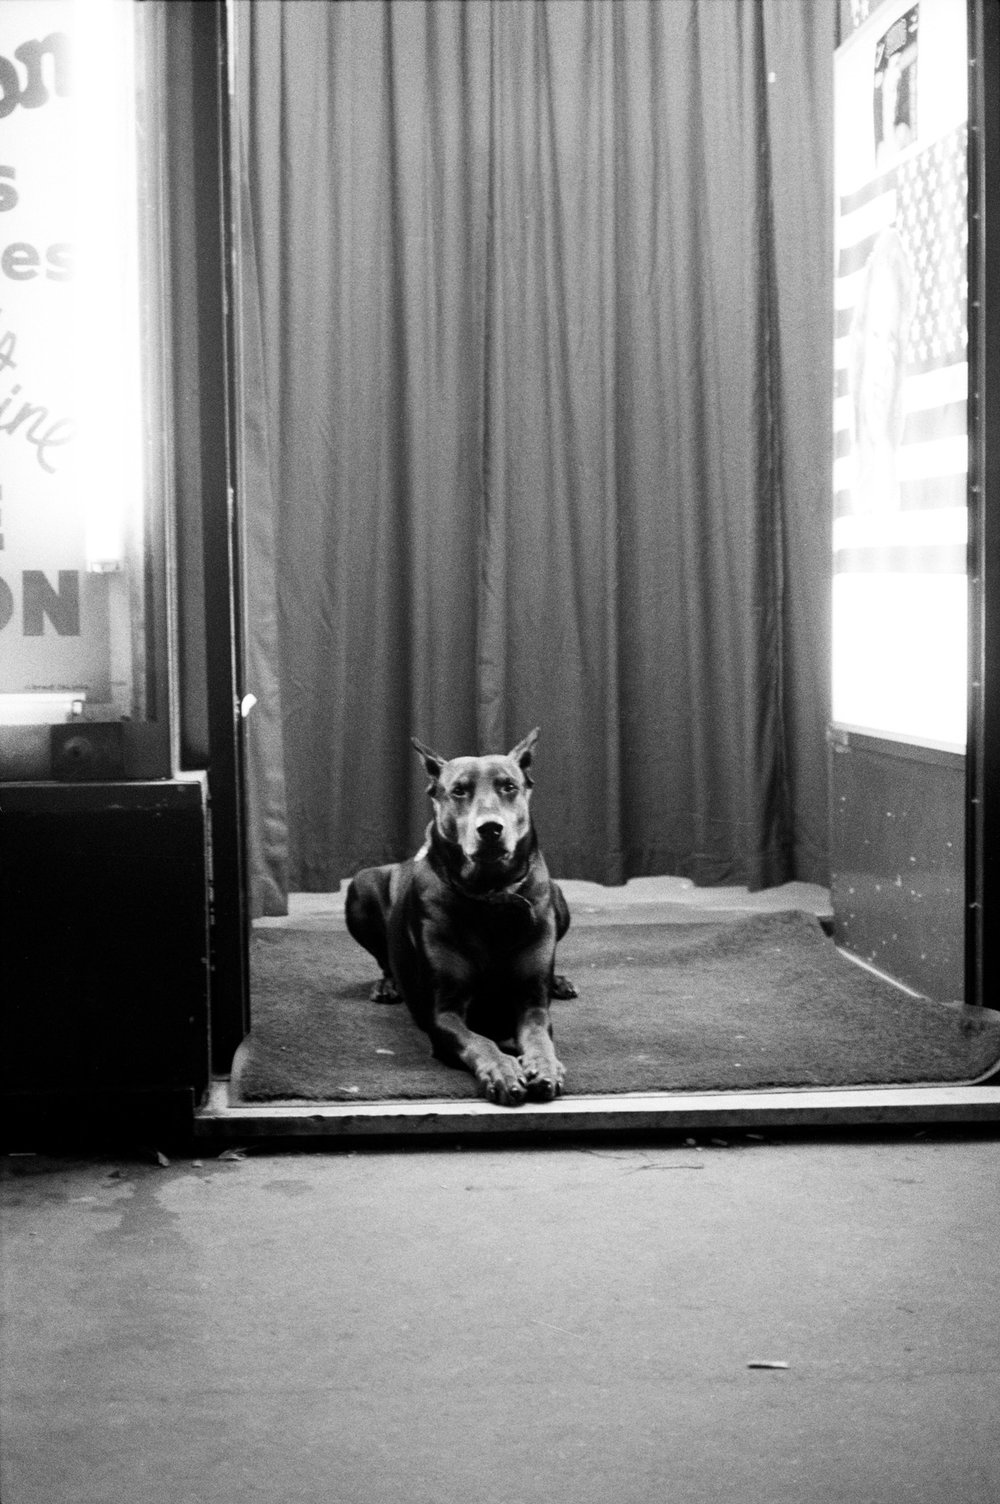 Wachhund am Eingang einer Peep-Show, Pigalle, Paris 1989 Watchdog in Front of a Peep-Show Entrance, Pigalle, Paris 1989, © Jörg Rubbert